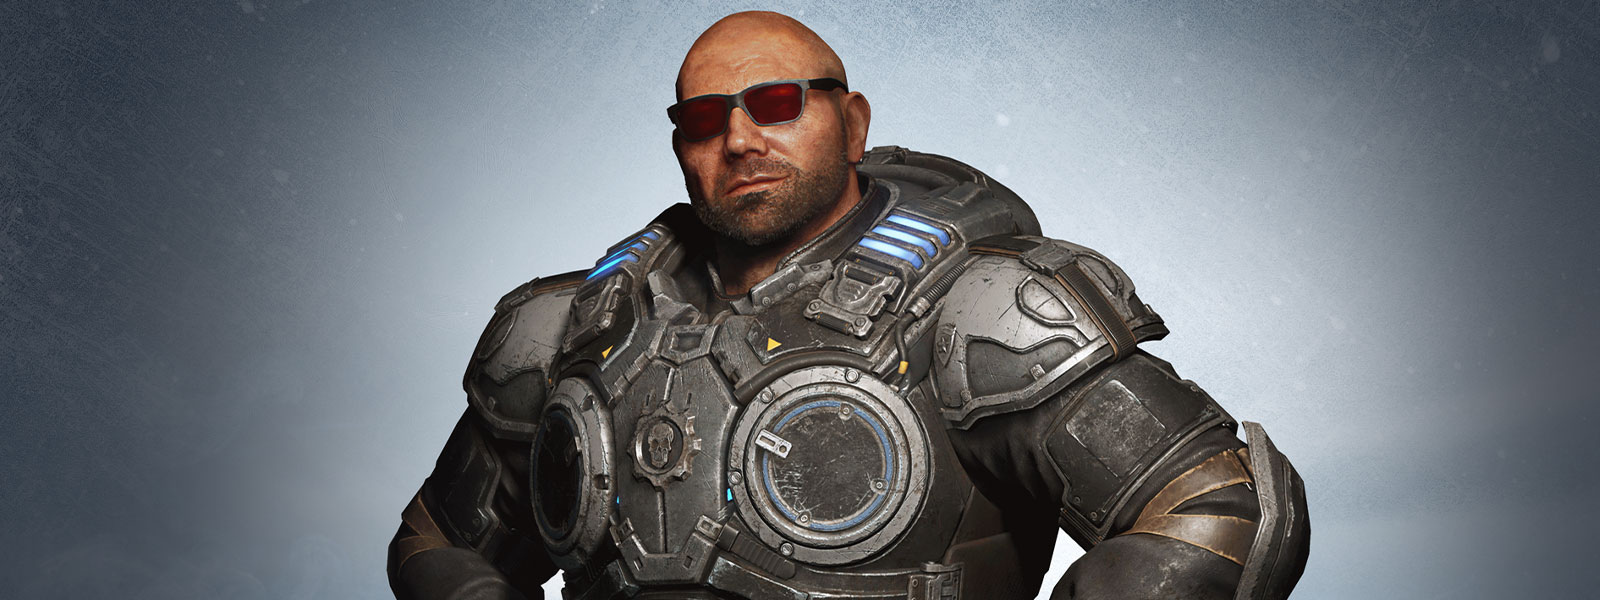 Torso view of Batista in Marcus Fenix's Gears armour